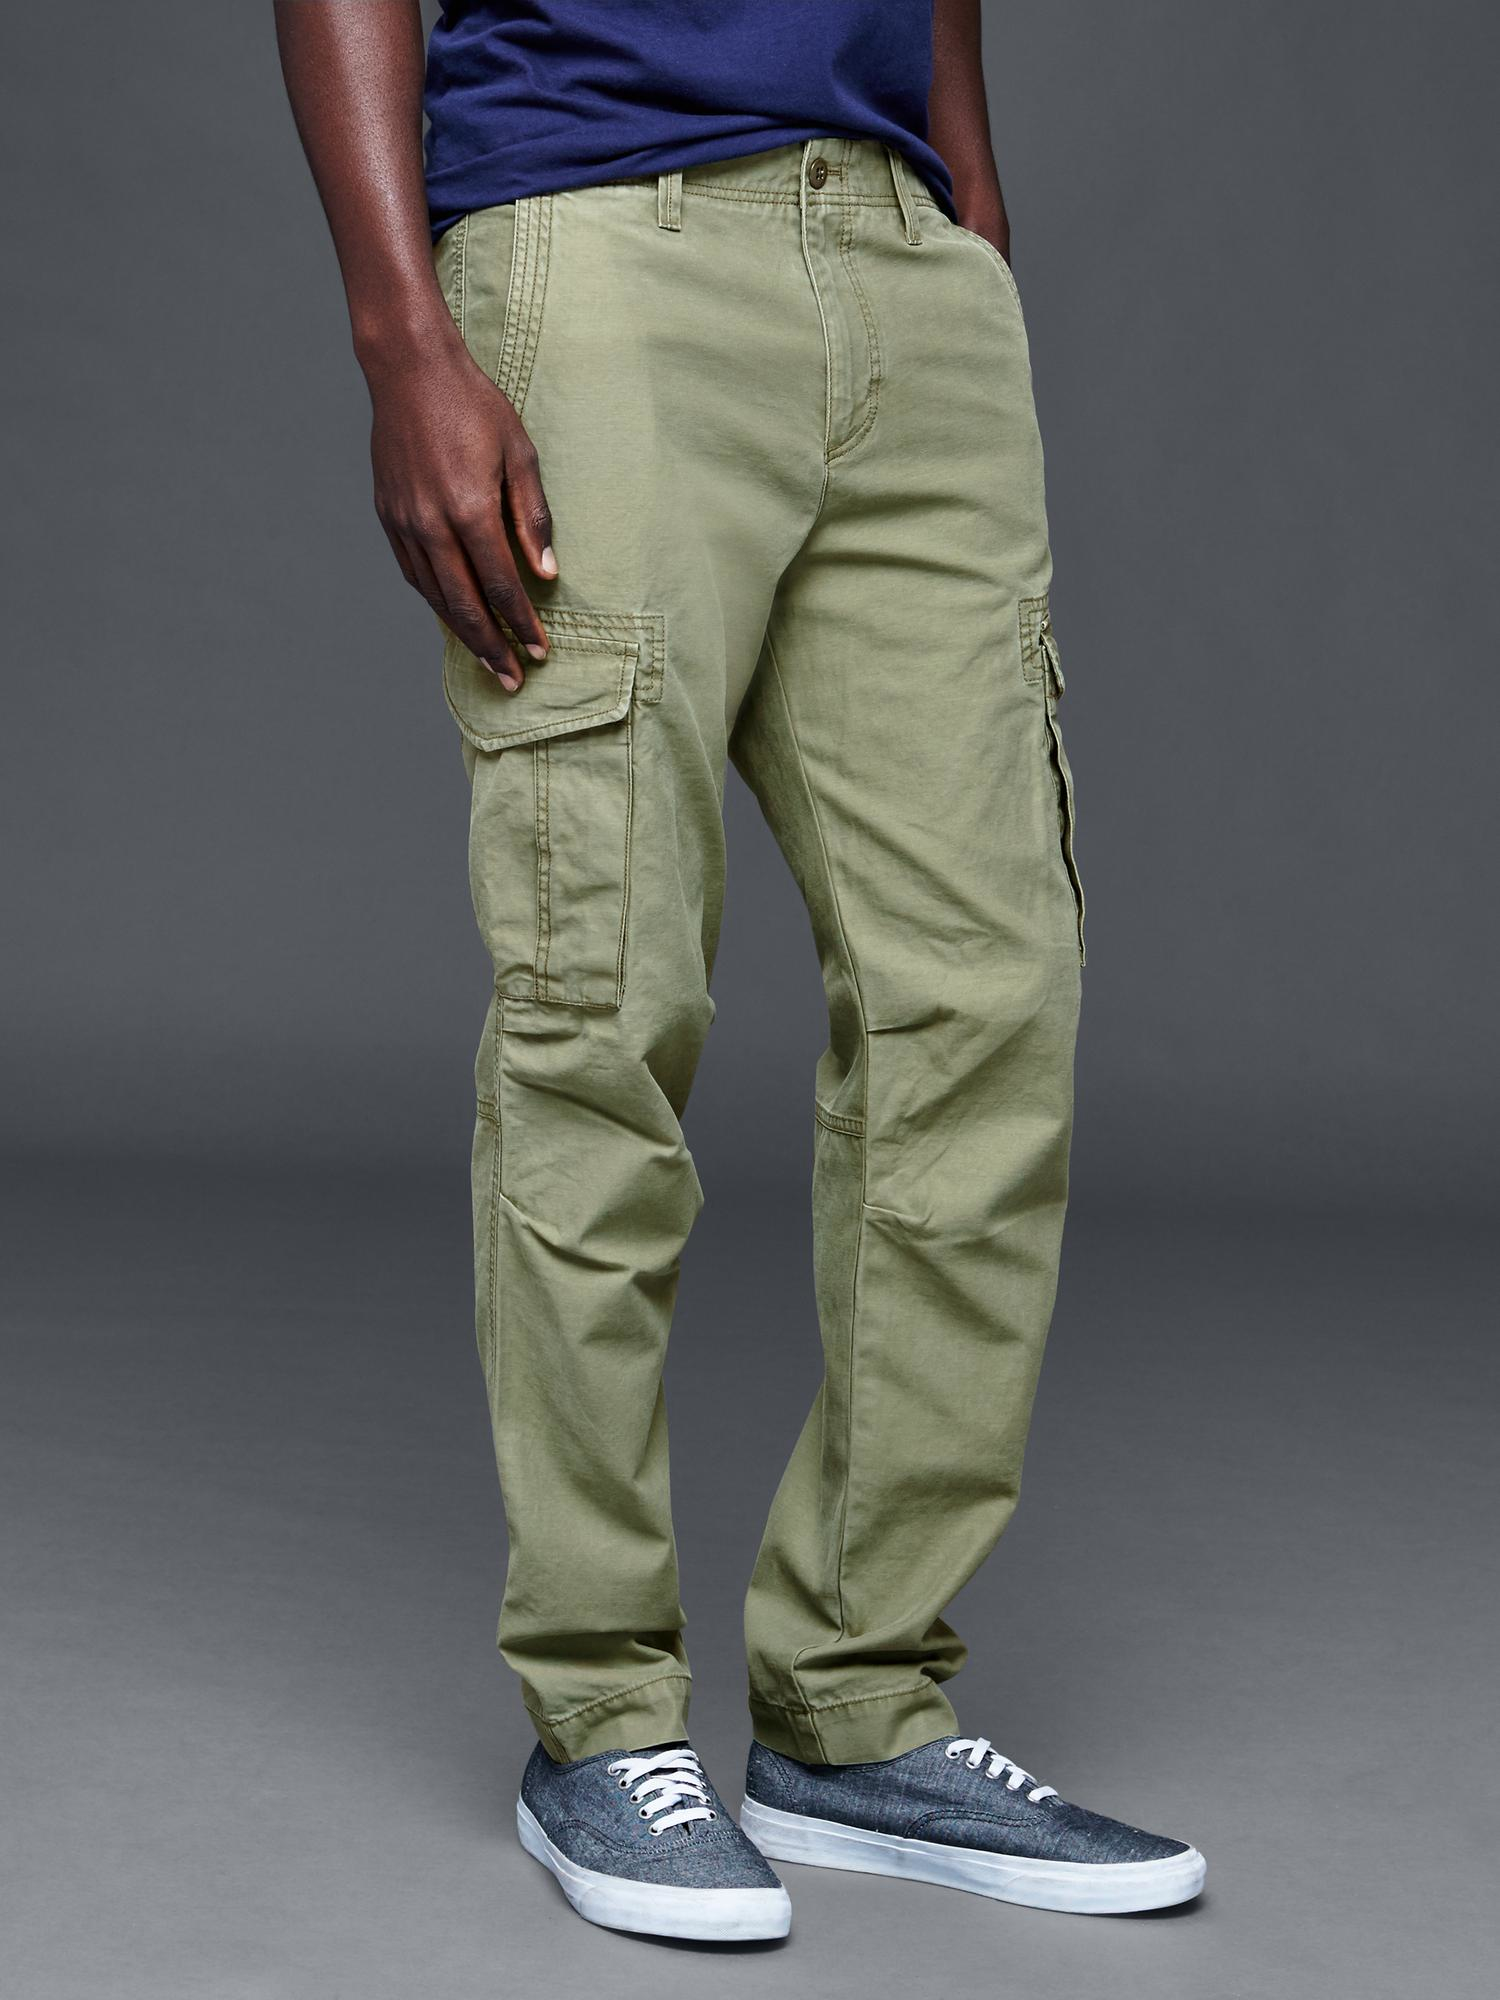 See all results for mens army green cargo pants. AKARMY Must Way Men's Cotton Casual Military Army Cargo Camo Combat Work Pants with 8 Pocket. by AKARMY. $ - $ $ 12 $ 36 99 Prime. FREE Shipping on eligible orders. Some sizes/colors are Prime eligible. 4 out of 5 stars